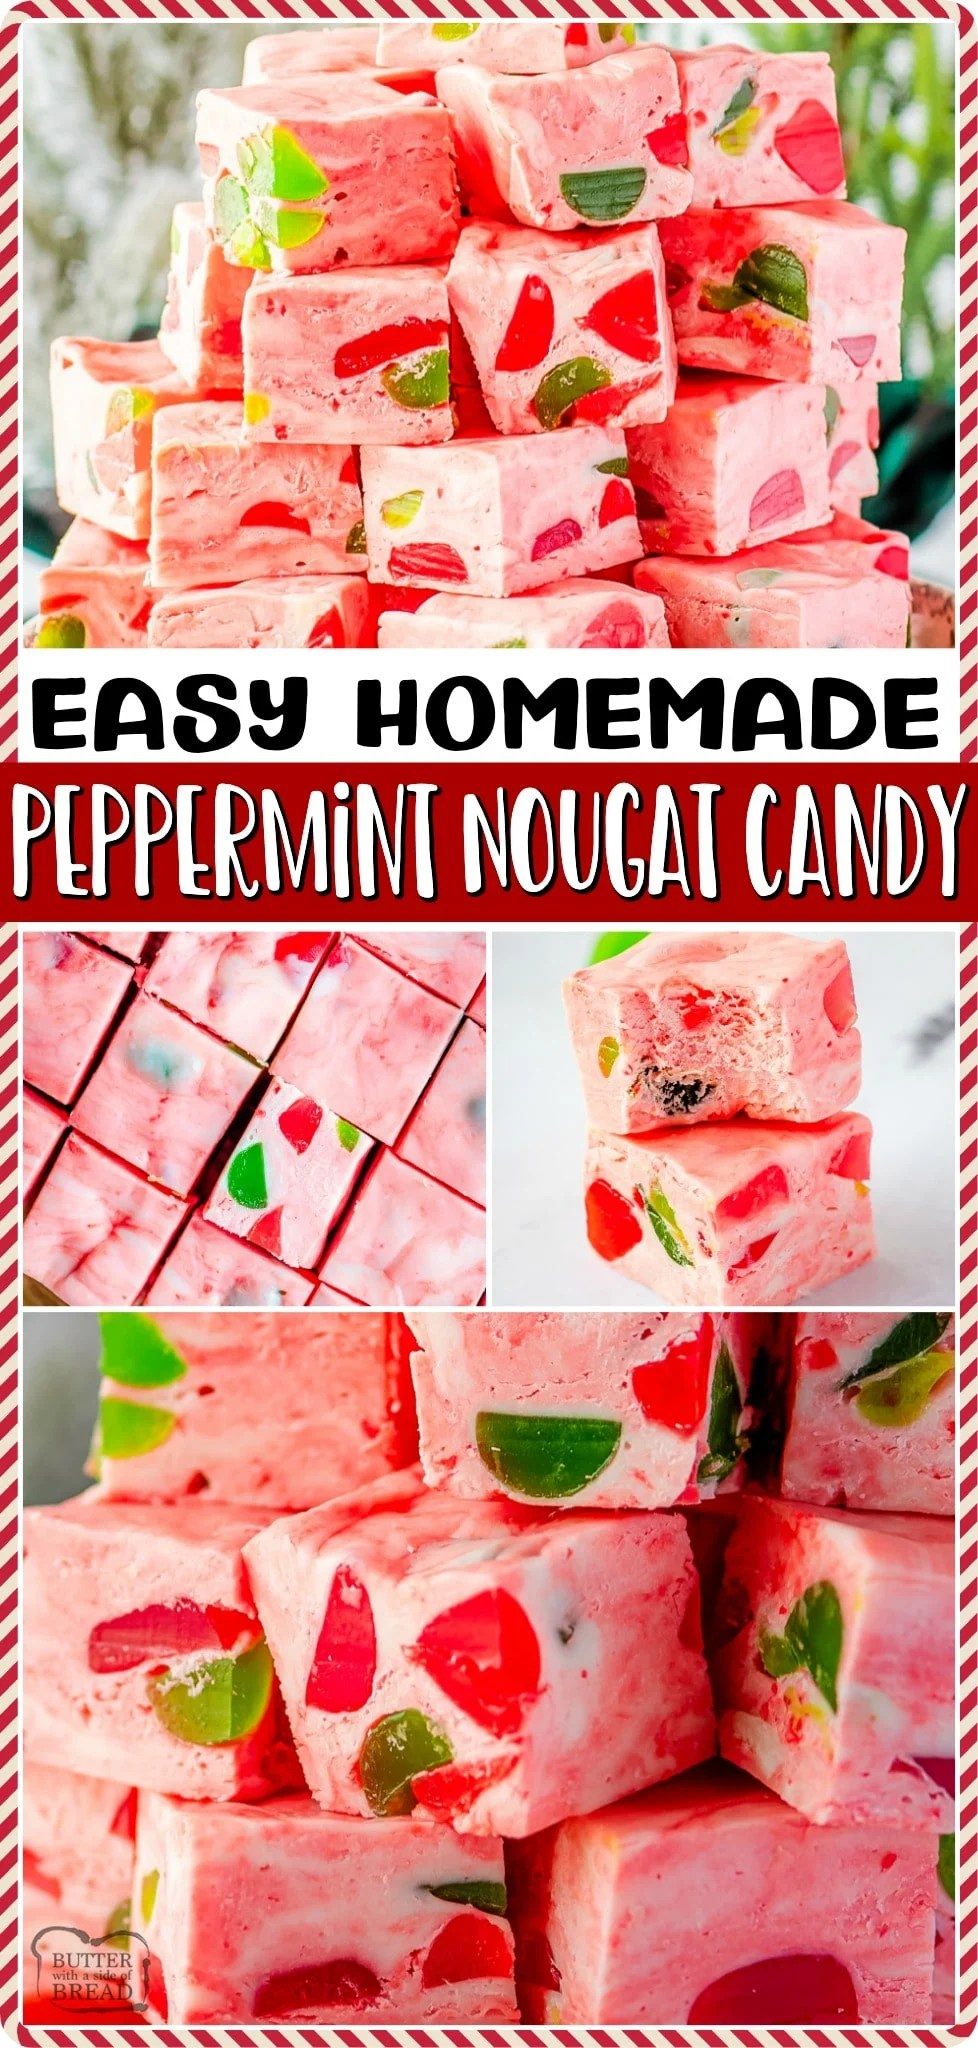 Homemade Peppermint Nougat Candy, made with 6 ingredients & is a perfectly festive holiday treat! This soft chewy candy with peppermint pieces & gumdrops is great for Christmas dessert trays!  #candy #nougat #peppermint #homemade #Christmas #gumdrops #holidays #easyrecipe from BUTTER WITH A SIDE OF BREAD